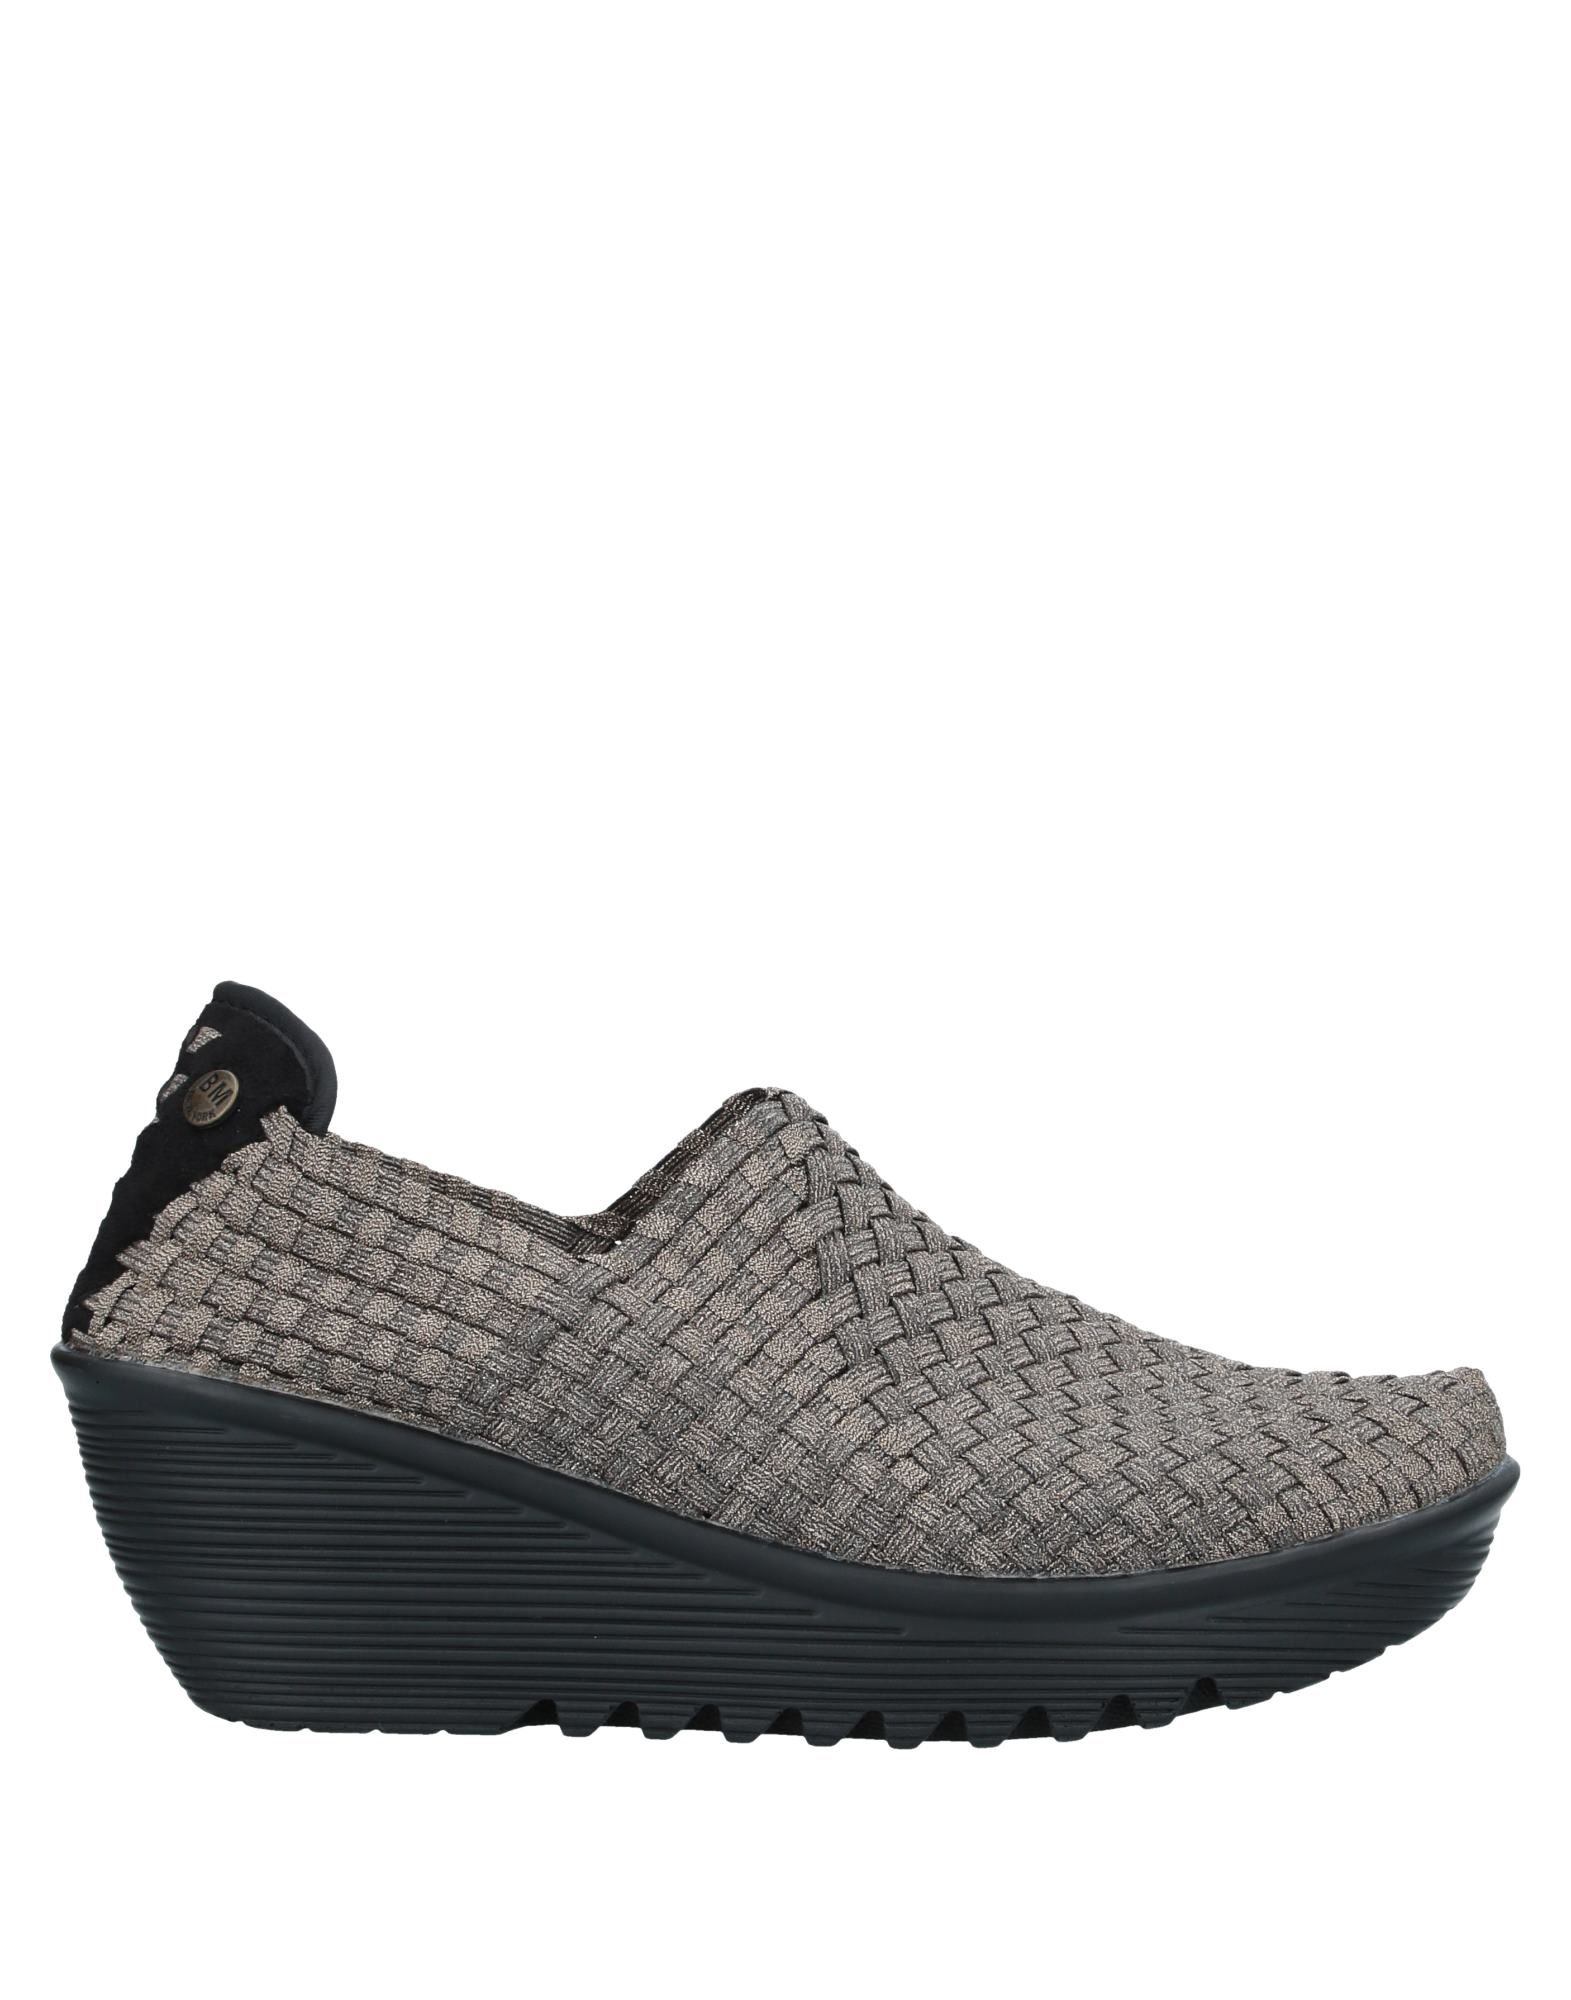 BERNIE MEV. Sneakers. lamé, contrasting applications, logo, solid color, round toeline, wedge heel, rubber wedge, fully lined, rubber cleated sole. Textile fibers